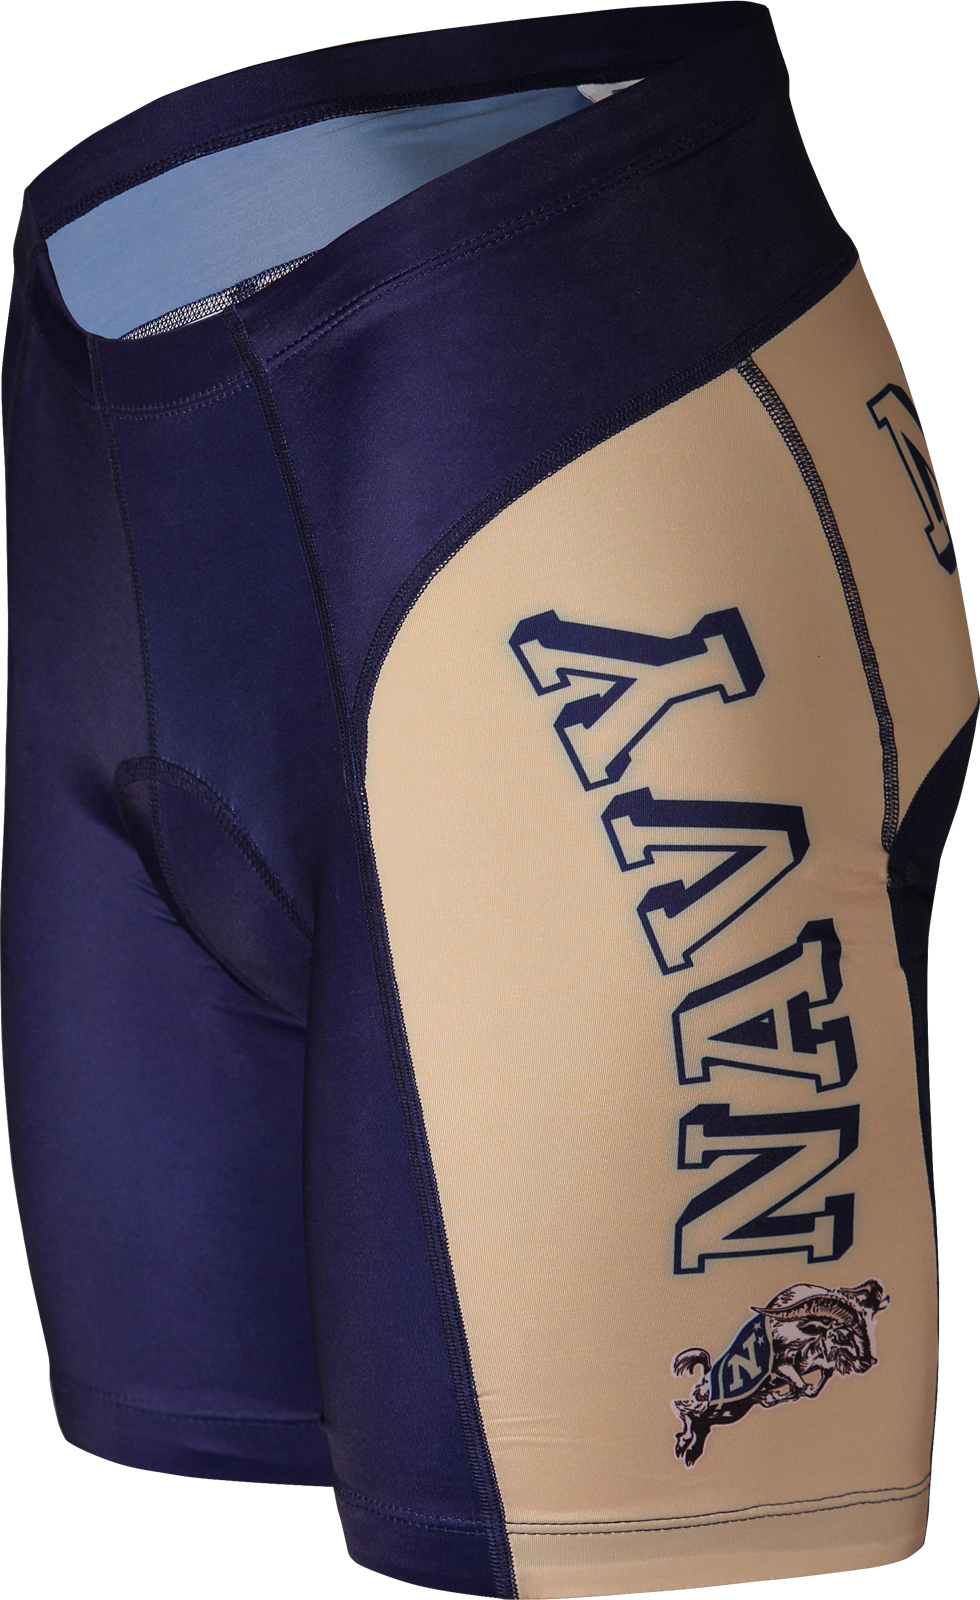 United States Naval Academy Navy Cycling Shorts